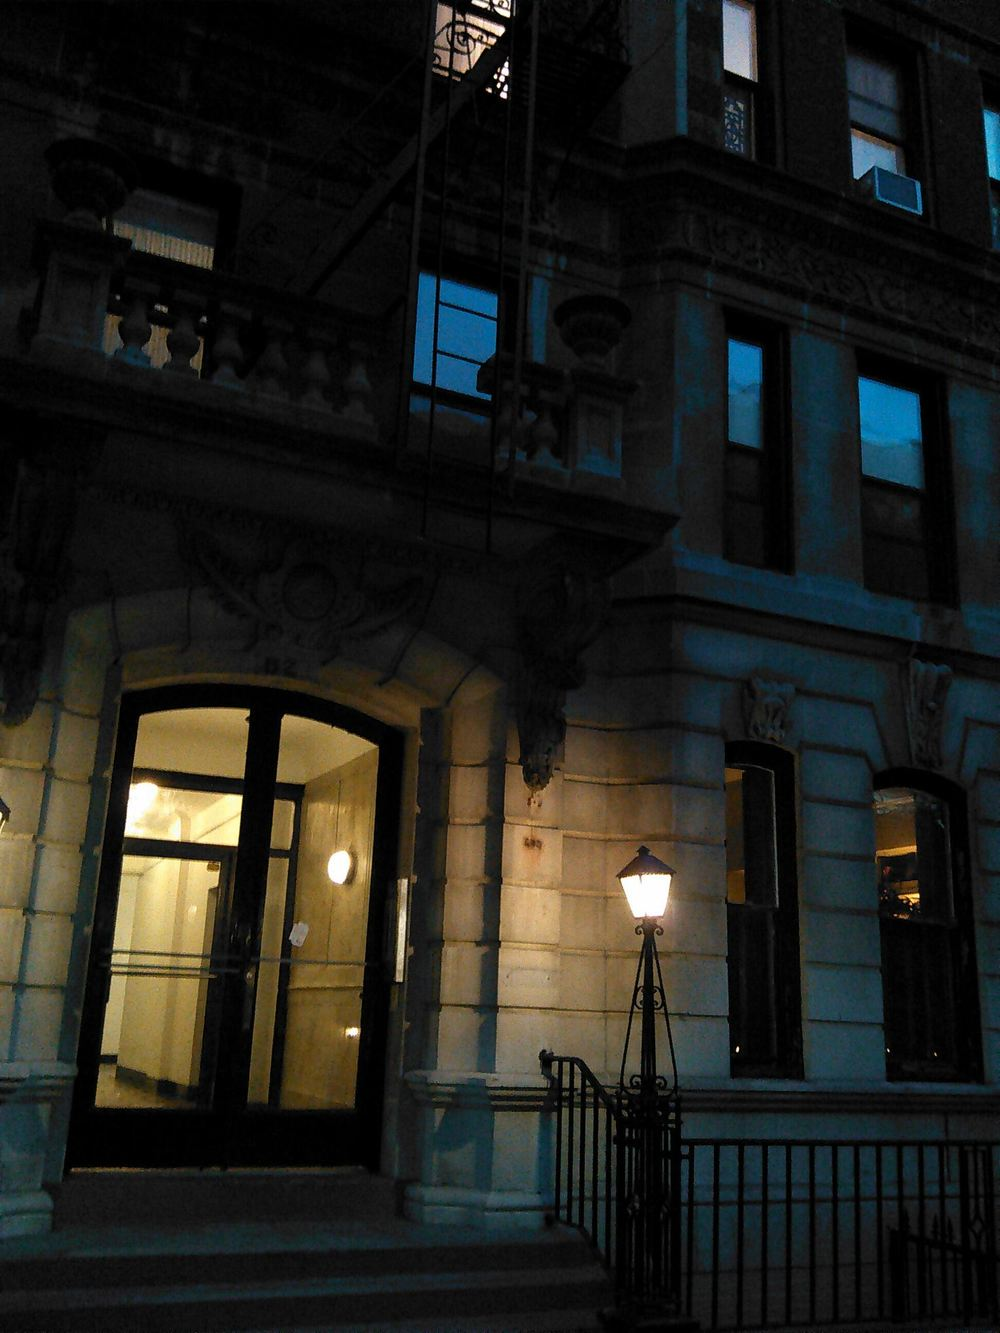 82 Washington Place the other night.